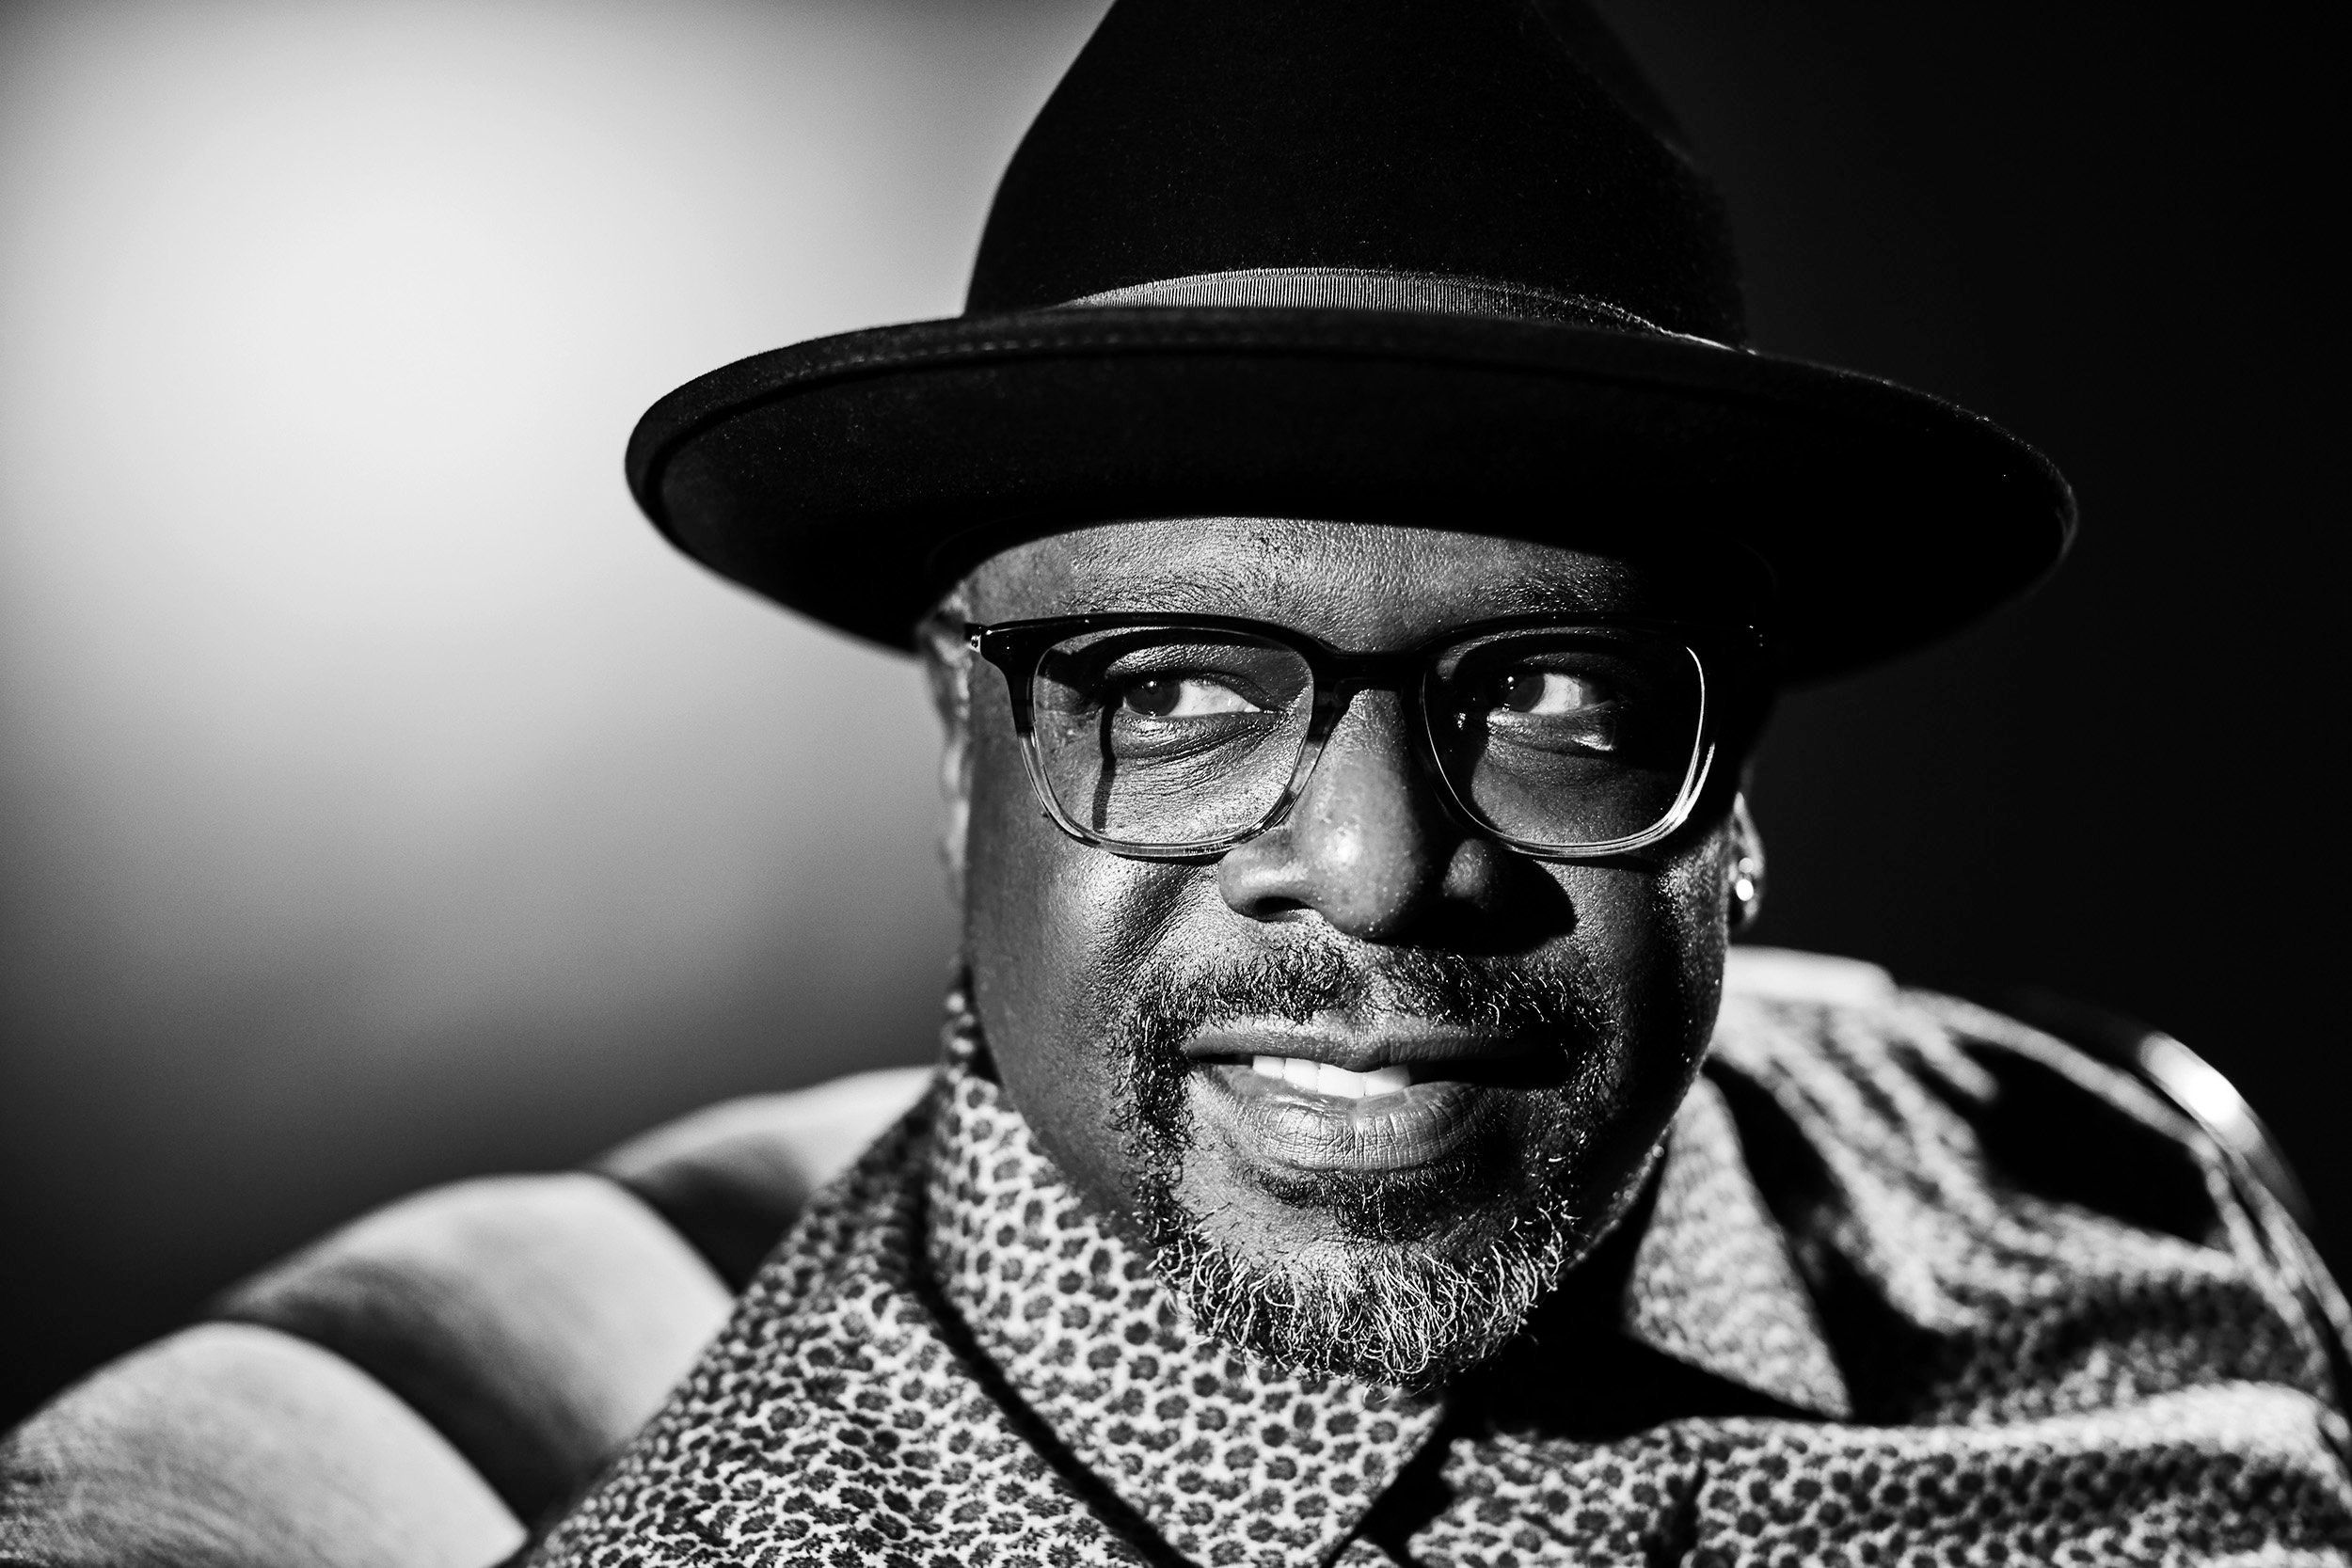 """TORONTO, ON - SEPTEMBER 11:  Cedric the Entertainer from the film """"First Reformed"""" poses for a portrait during the 2017 Toronto International Film Festival at Intercontinental Hotel on September 11, 2017 in Toronto, Canada.  (Photo by Maarten de Boer/Contour by Getty Images)"""